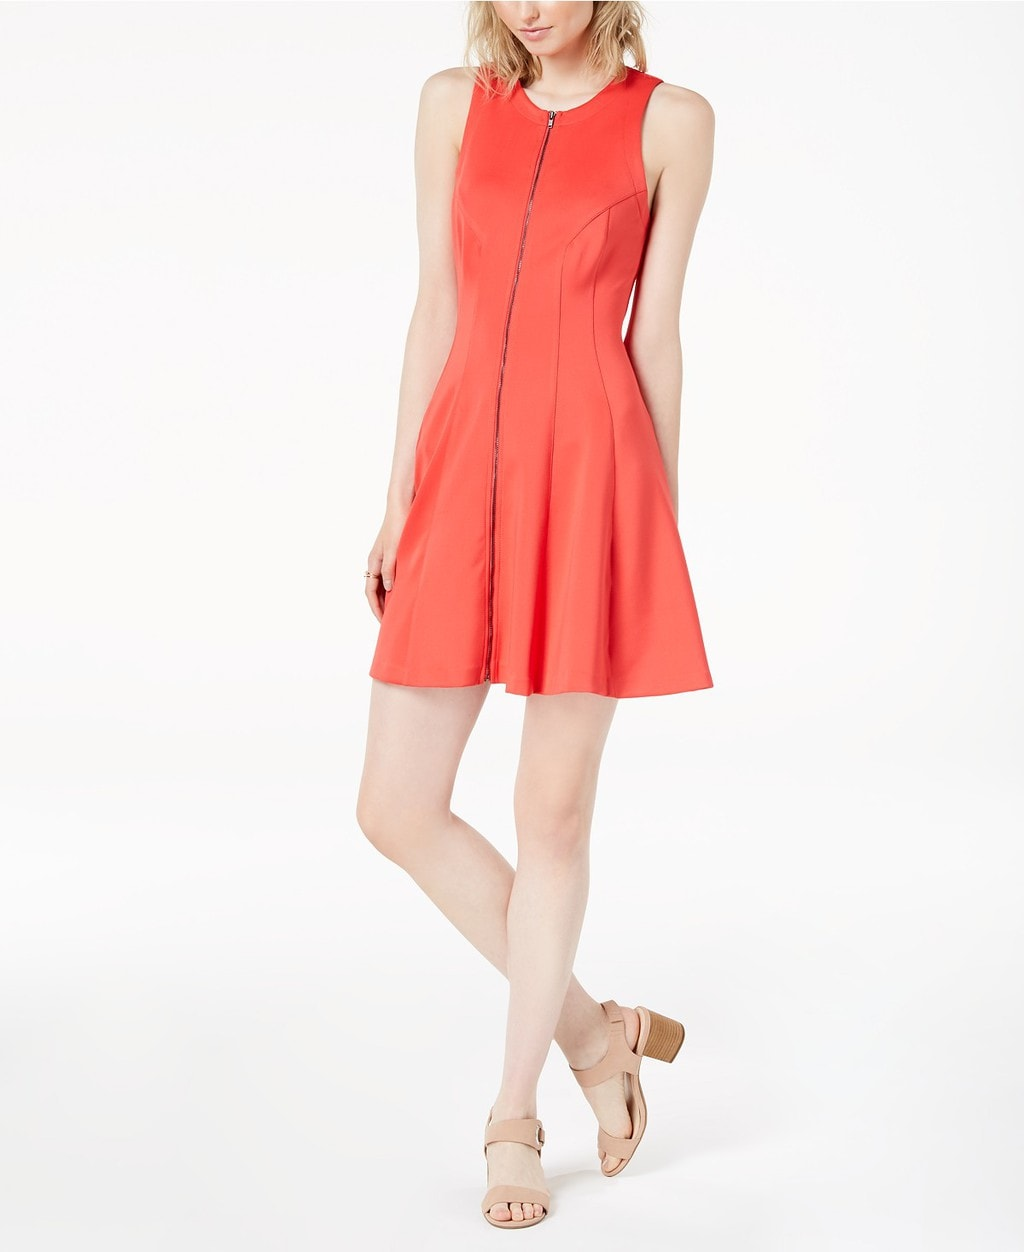 Sleeveless coral zip-front a-line dress with seaming